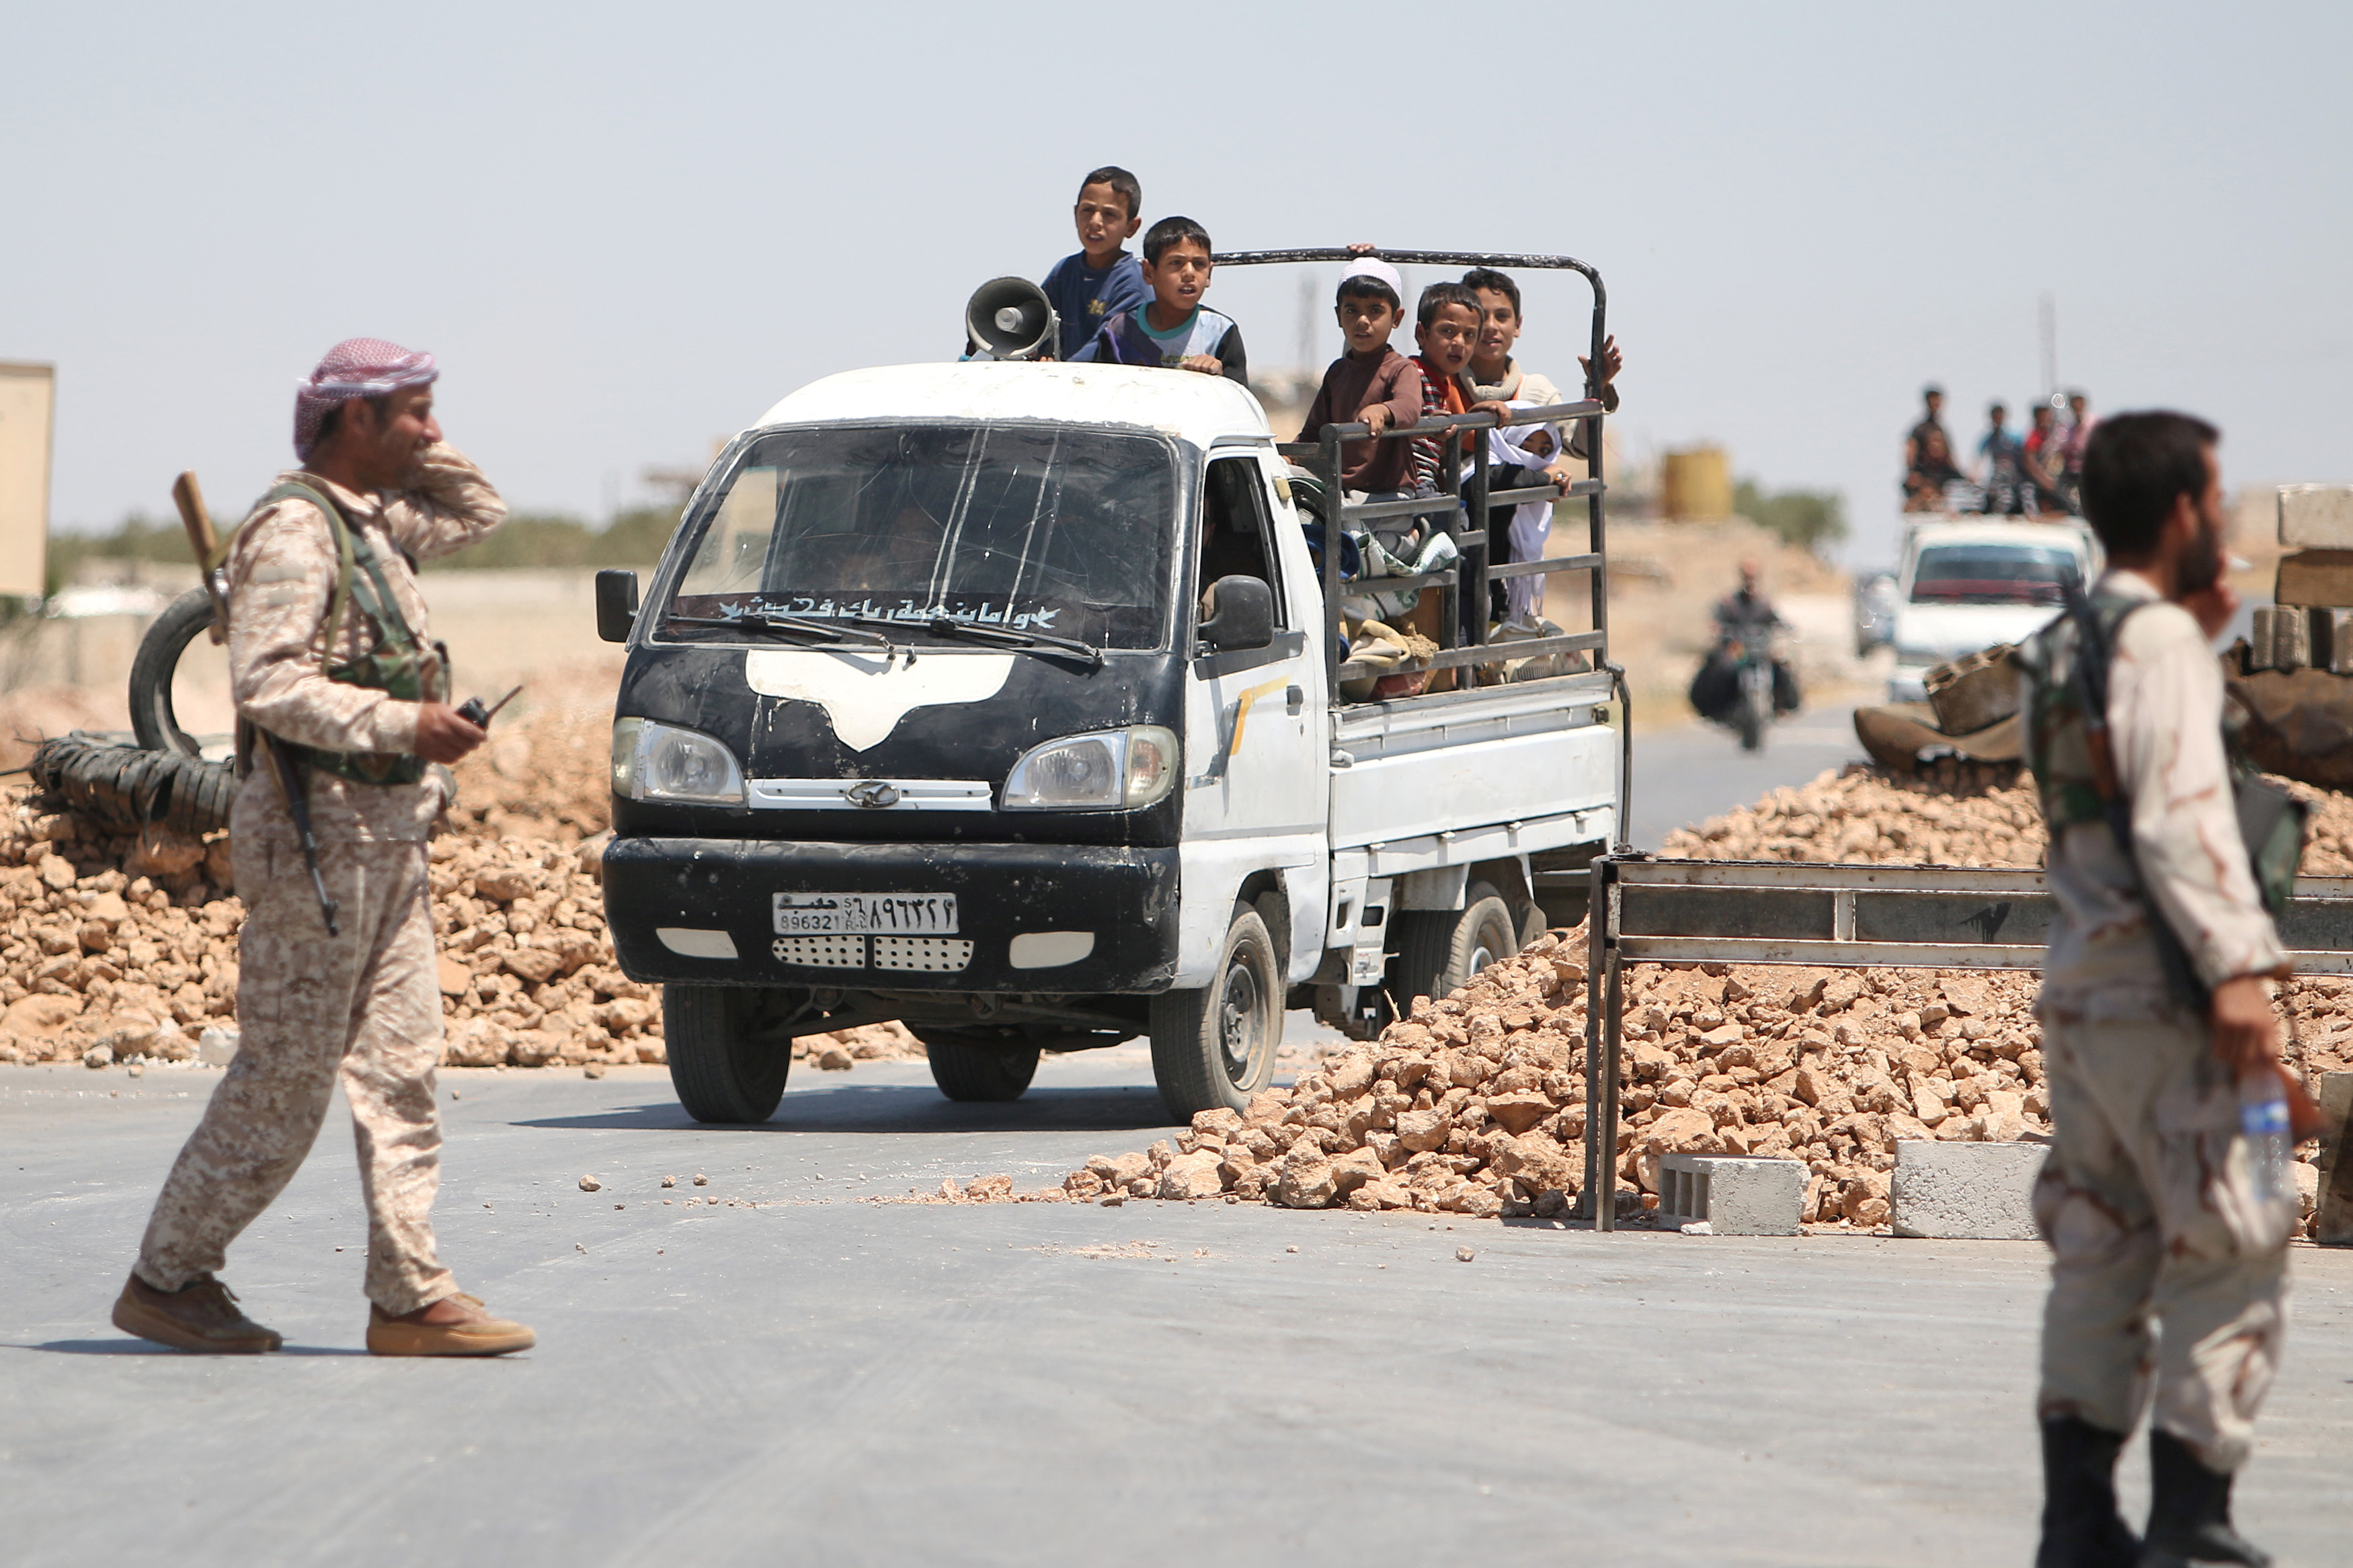 Syria Democratic Forces (SDF) fighters man a checkpoint as civilians on pick-up trucks evacuate from the southern districts of Manbij city after the SDF advanced into it in Aleppo Governorate, Syria, July 1, 2016.